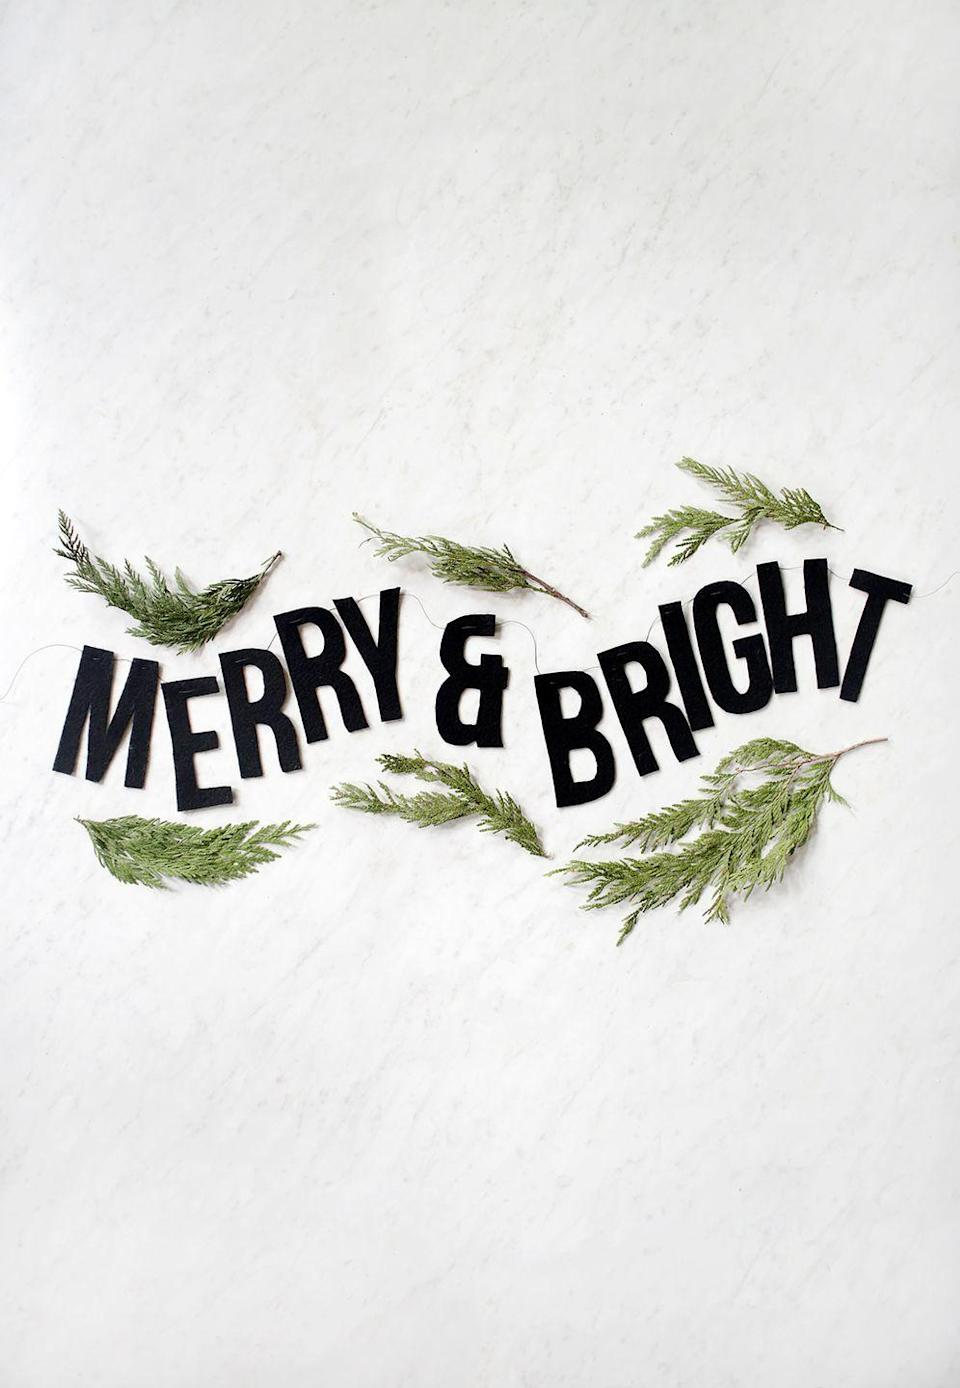 """<p>Black isn't typically the color of choice for the holidays, but this graphic felt garland makes the hue look surprisingly chic. </p><p><a href=""""https://themerrythought.com/diy/diy-felt-holiday-garland/"""" rel=""""nofollow noopener"""" target=""""_blank"""" data-ylk=""""slk:Get the tutorial."""" class=""""link rapid-noclick-resp"""">Get the tutorial.</a></p><p><a class=""""link rapid-noclick-resp"""" href=""""https://www.amazon.com/Mesheshe-Adhesive-Velvet-Flocking-Jewelry/dp/B07YWFSBRX?tag=syn-yahoo-20&ascsubtag=%5Bartid%7C10072.g.37499128%5Bsrc%7Cyahoo-us"""" rel=""""nofollow noopener"""" target=""""_blank"""" data-ylk=""""slk:SHOP FELT"""">SHOP FELT</a></p>"""